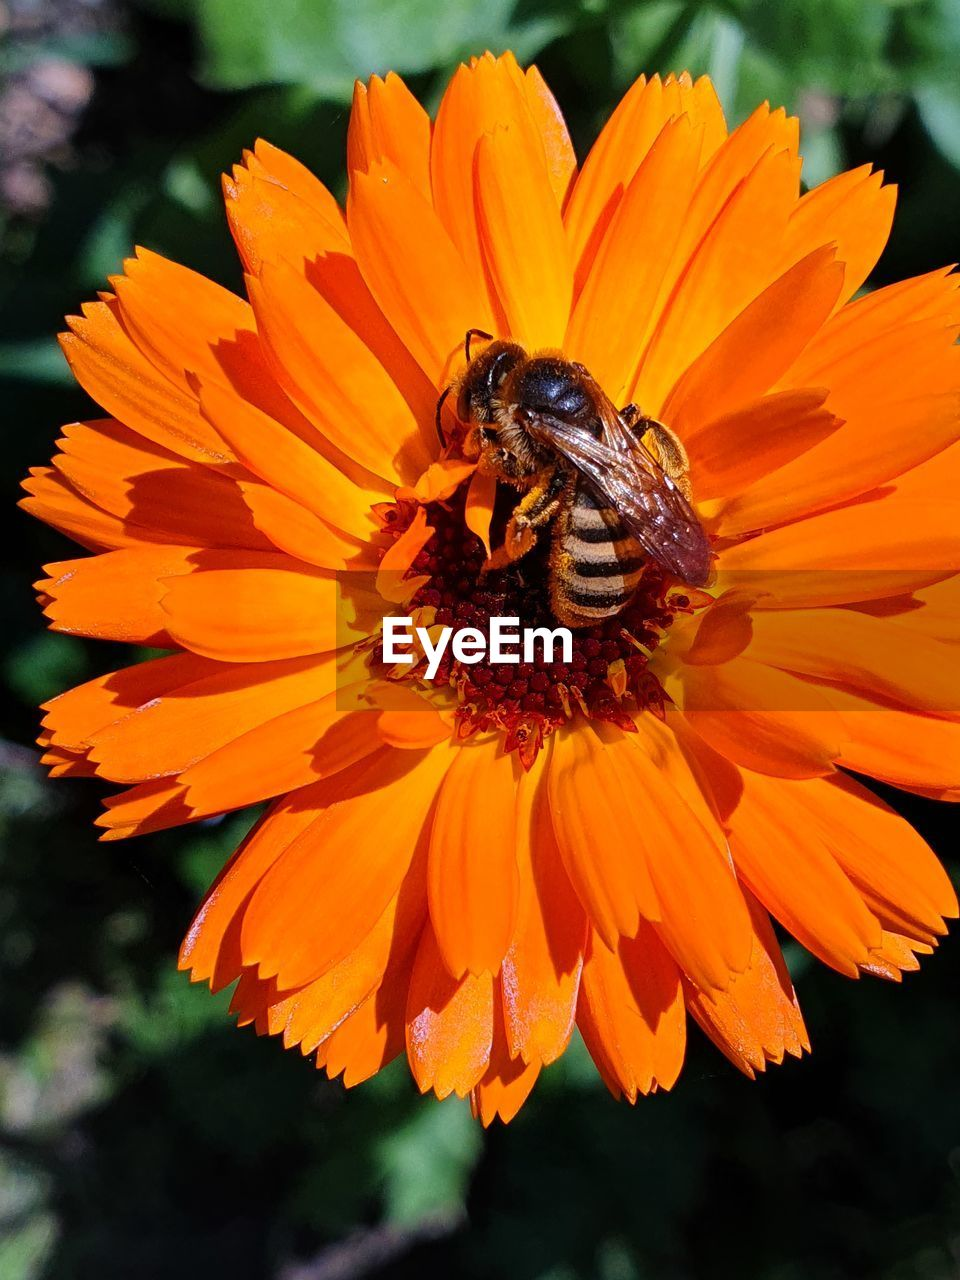 flowering plant, flower, petal, animal themes, invertebrate, beauty in nature, animal wildlife, animals in the wild, fragility, flower head, one animal, insect, animal, vulnerability, plant, growth, close-up, freshness, orange color, inflorescence, pollen, pollination, no people, outdoors